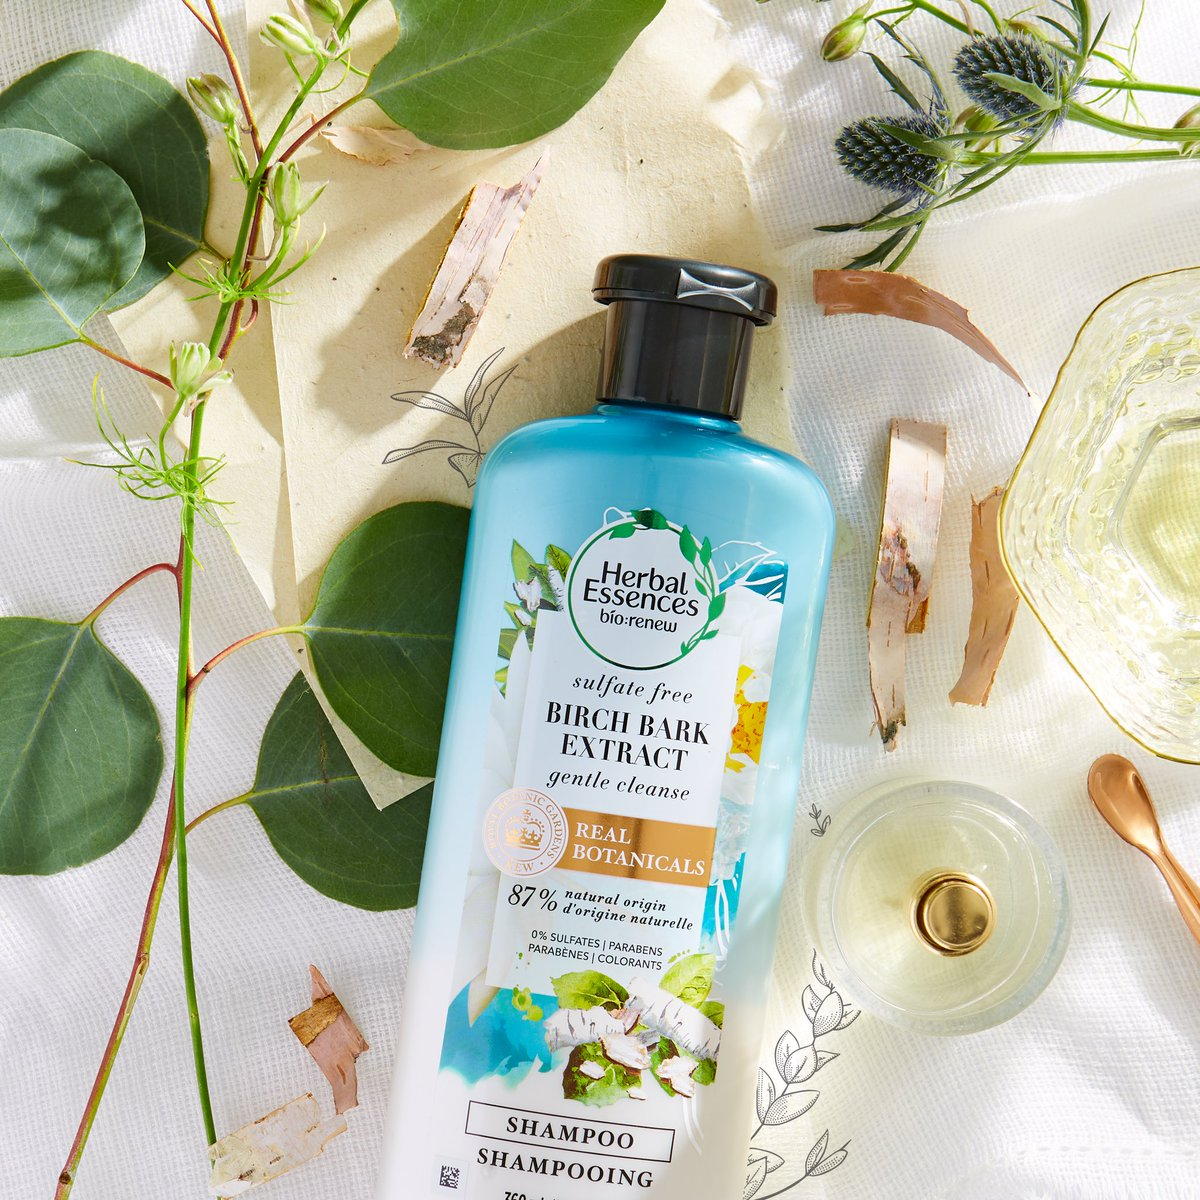 Stumped about what makes our Birch Bark Extract collection so special? It's sulfate free for a gentle cleanse AND packed with real botanicals endorsed by the Royal Botanic Gardens, Kew @kewgardens! #PlantPowerinEveryShower #SulfateFree #HerbalEssences #BirchBark #GentleCleanse https://t.co/kofwTmRGDK